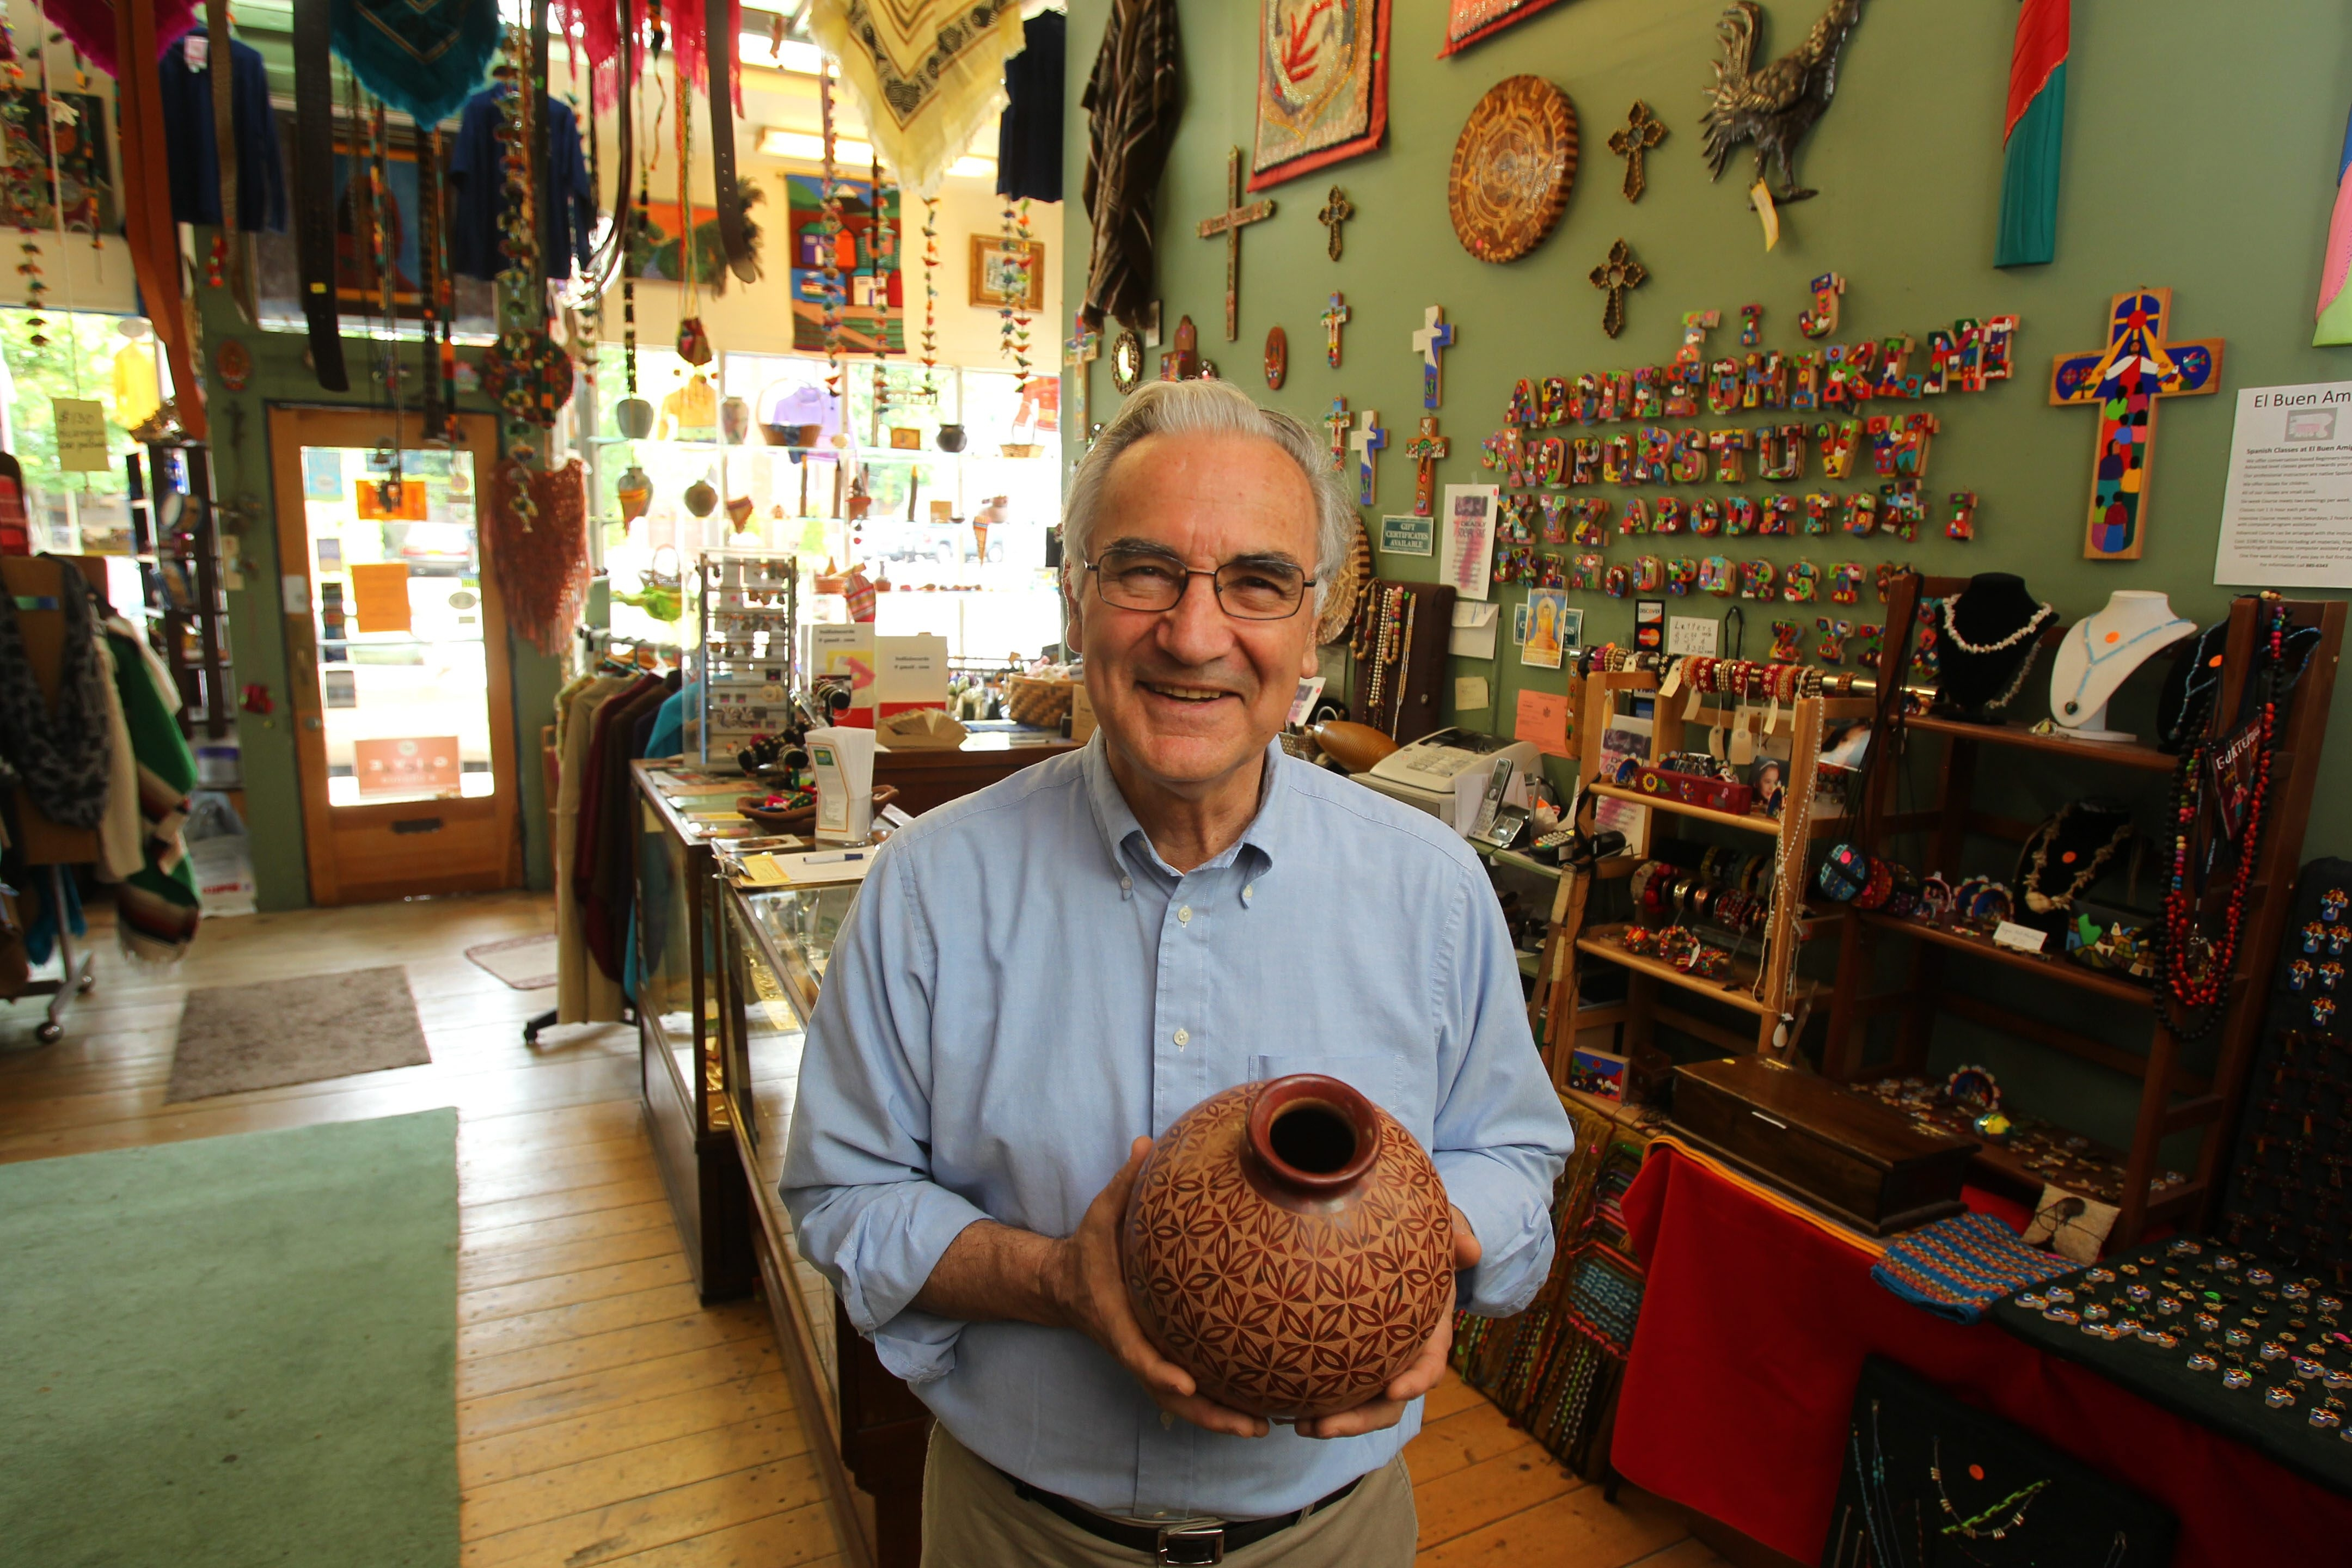 El Buen Amigo founder Santiago Masferrer either travels himself, or has others who are traveling buy the crafts that fill his shelves at his store on Elmwood Avenue.